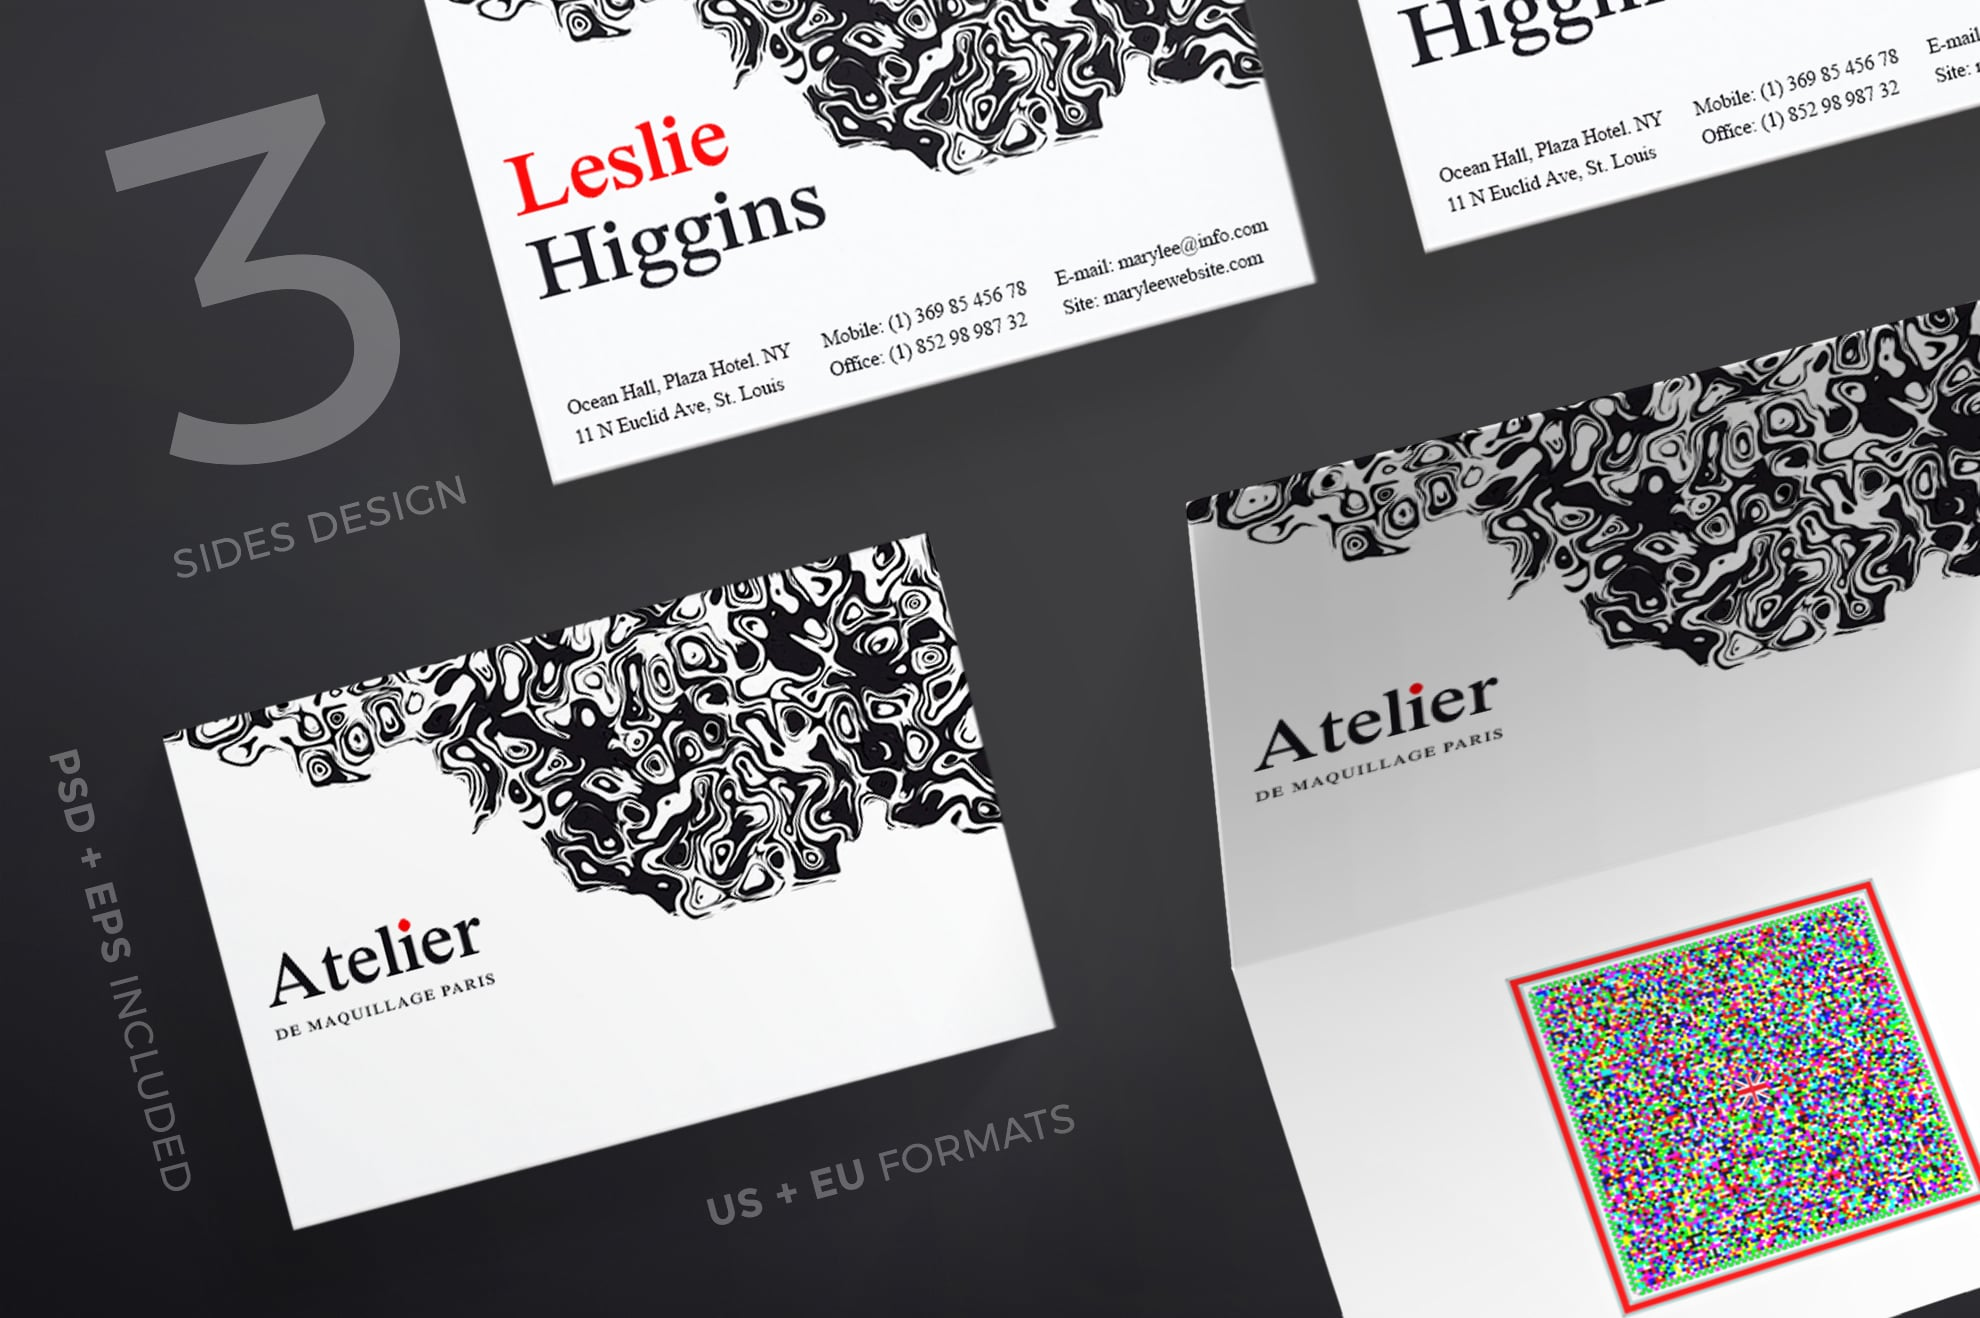 110 in 1 Business Card Bundle - 012 bc atelier 33 0